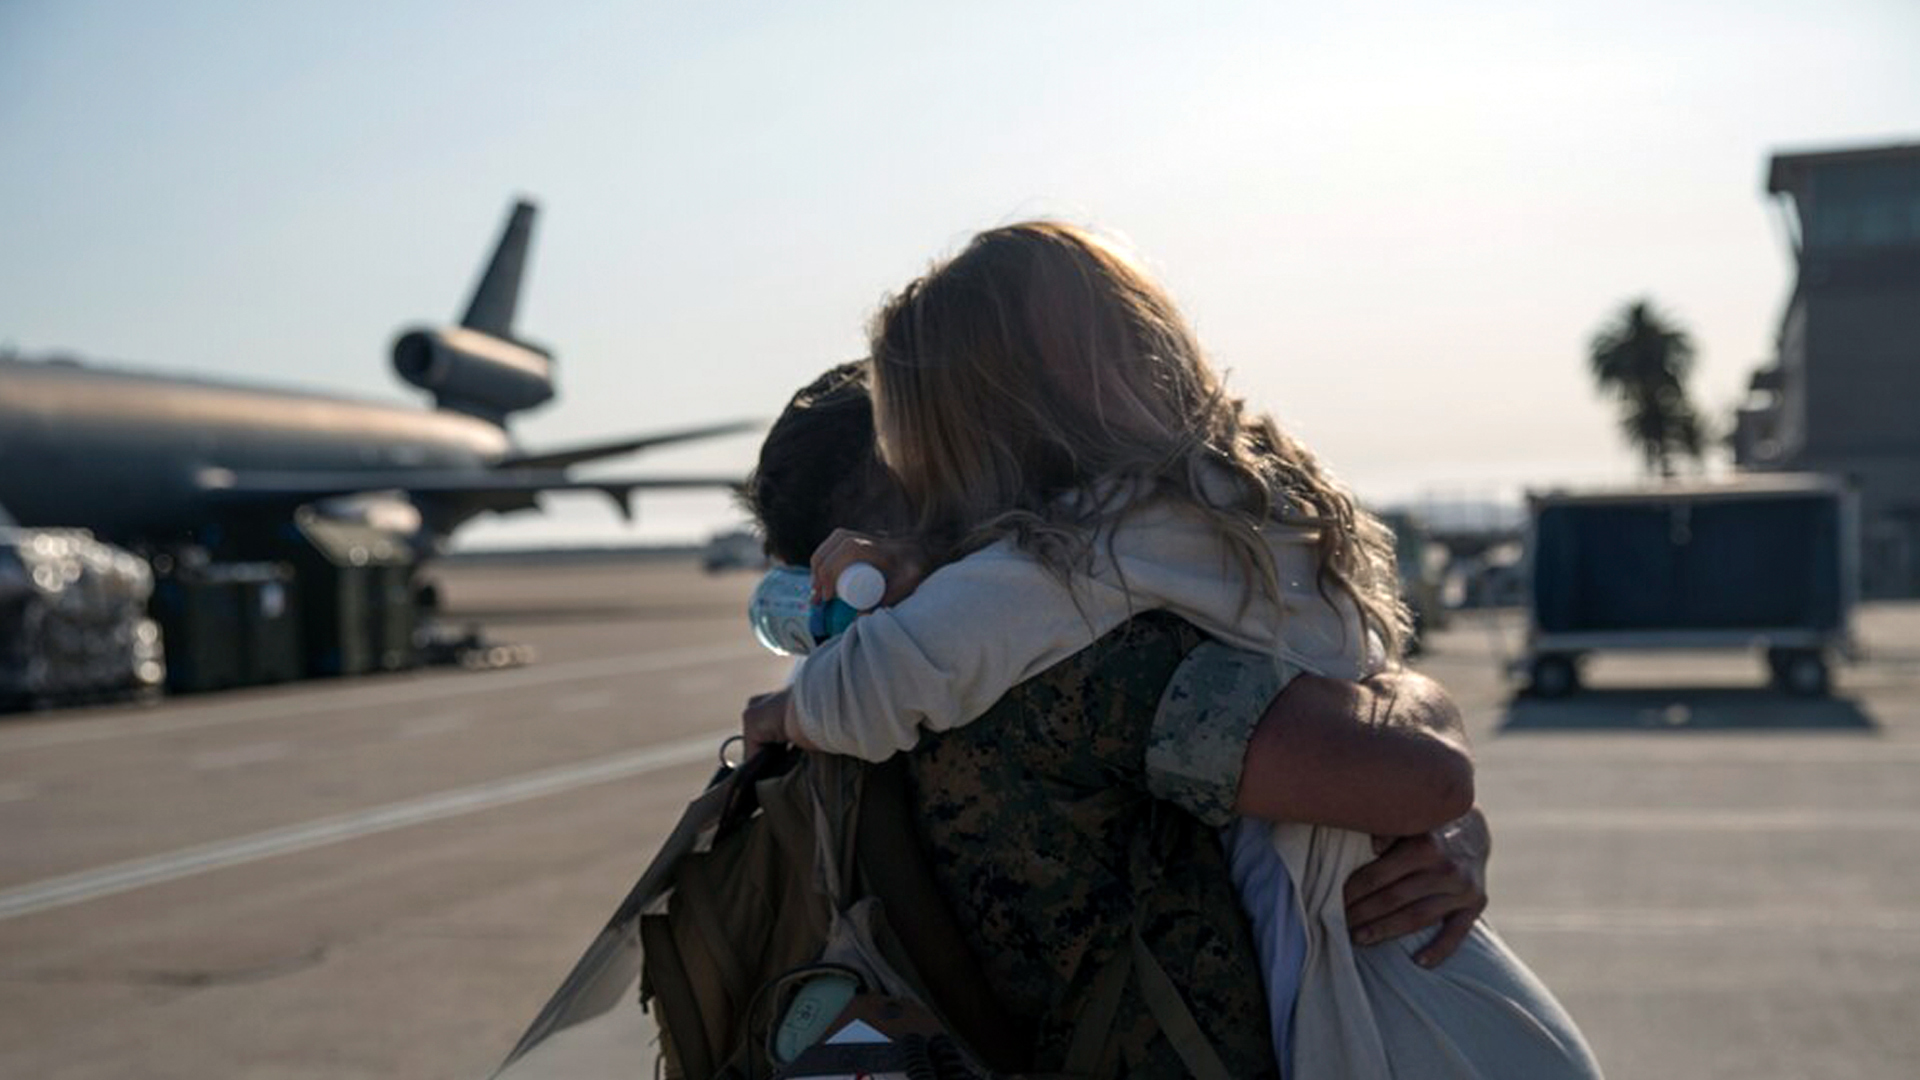 Couple reunited after deployment